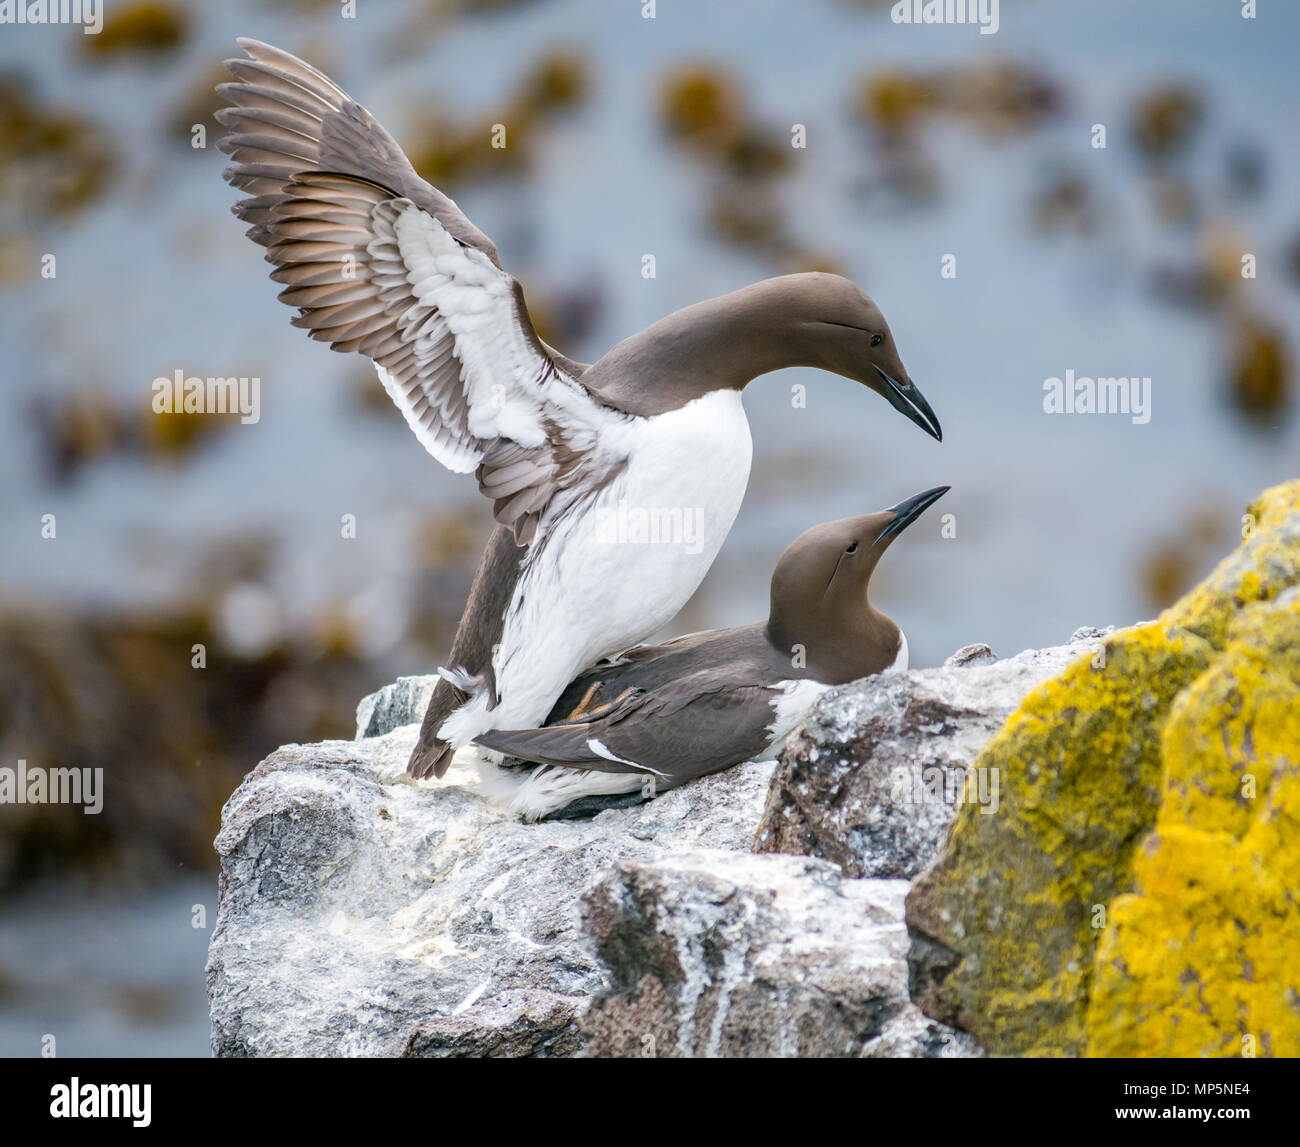 A mating pair of guillemot seabirds, Uria aalge, on a rocky ledge, Isle of May, Firth of Forth. Scotland, UK Stock Photo